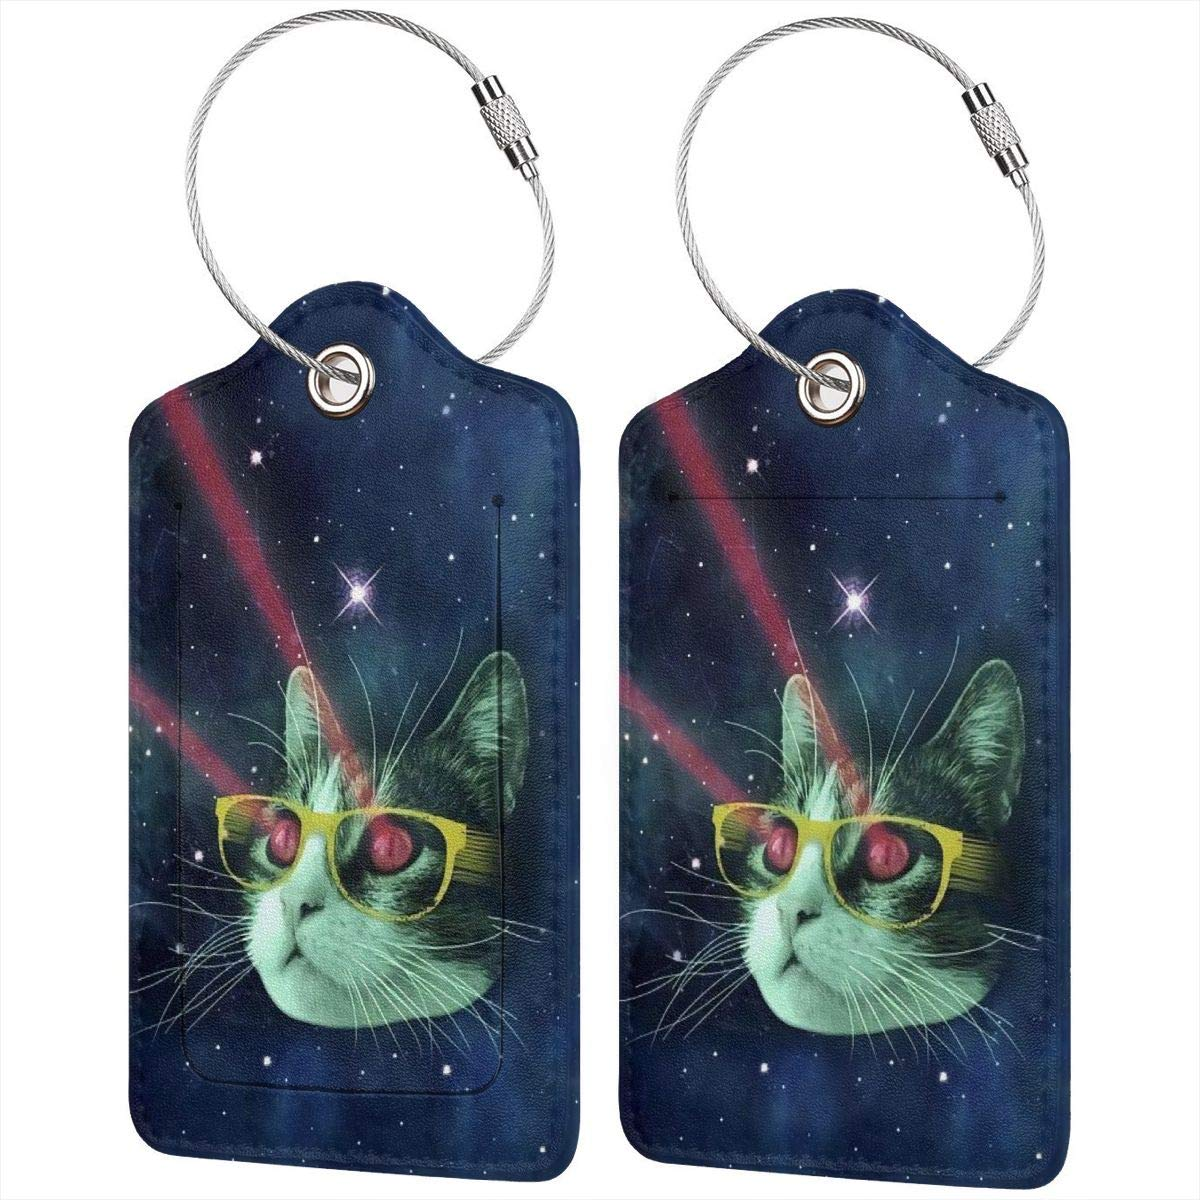 Godzigod Travel Luggage Tags PU Leather Bag Tags Suitcase Baggage Label Handbag Tag with Full Back Privacy Cover Steel Loops Red Meme Laser Cat Glasses